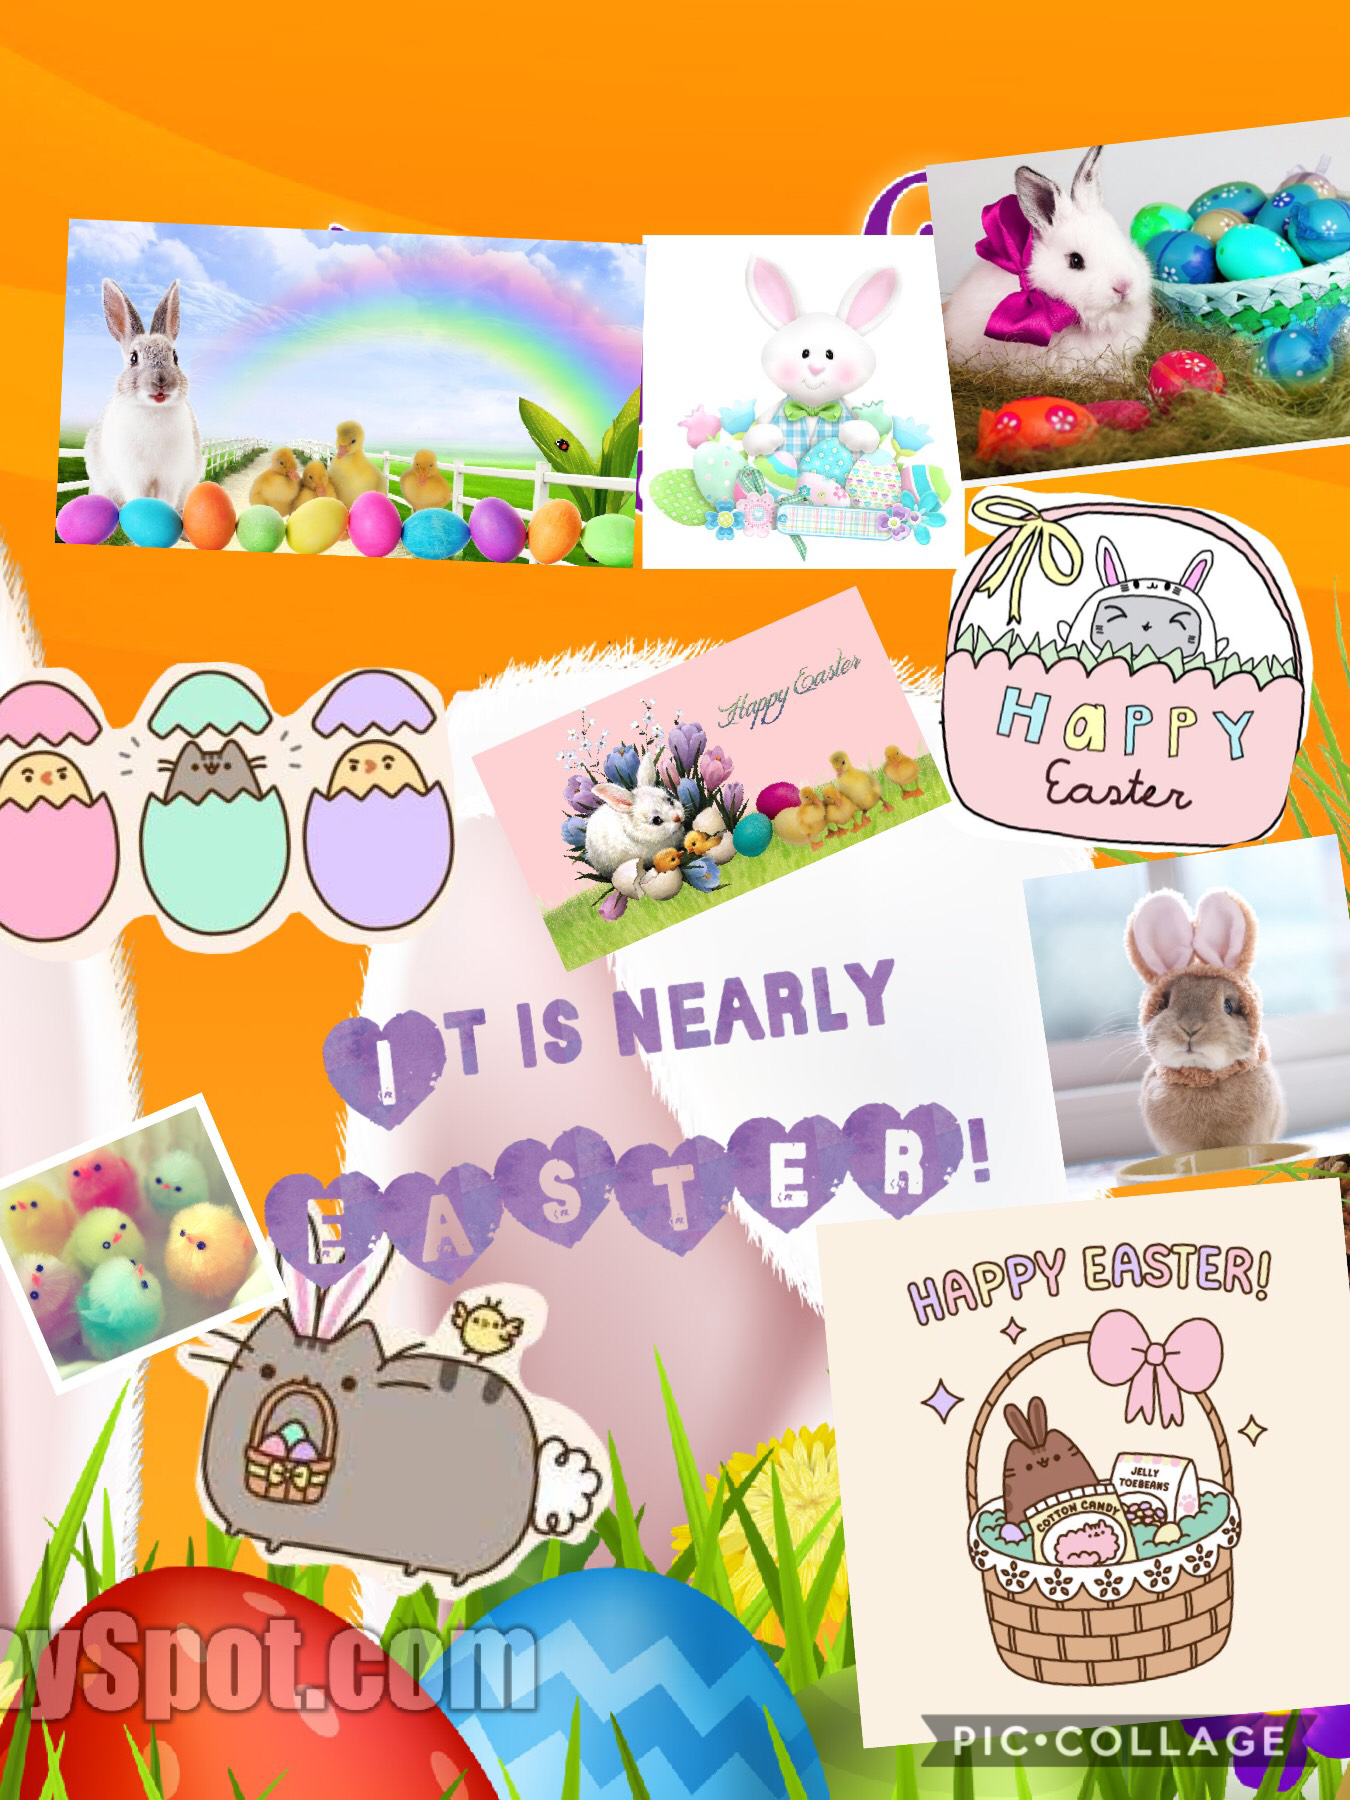 Hi!I only done this case it is nearly EASTER